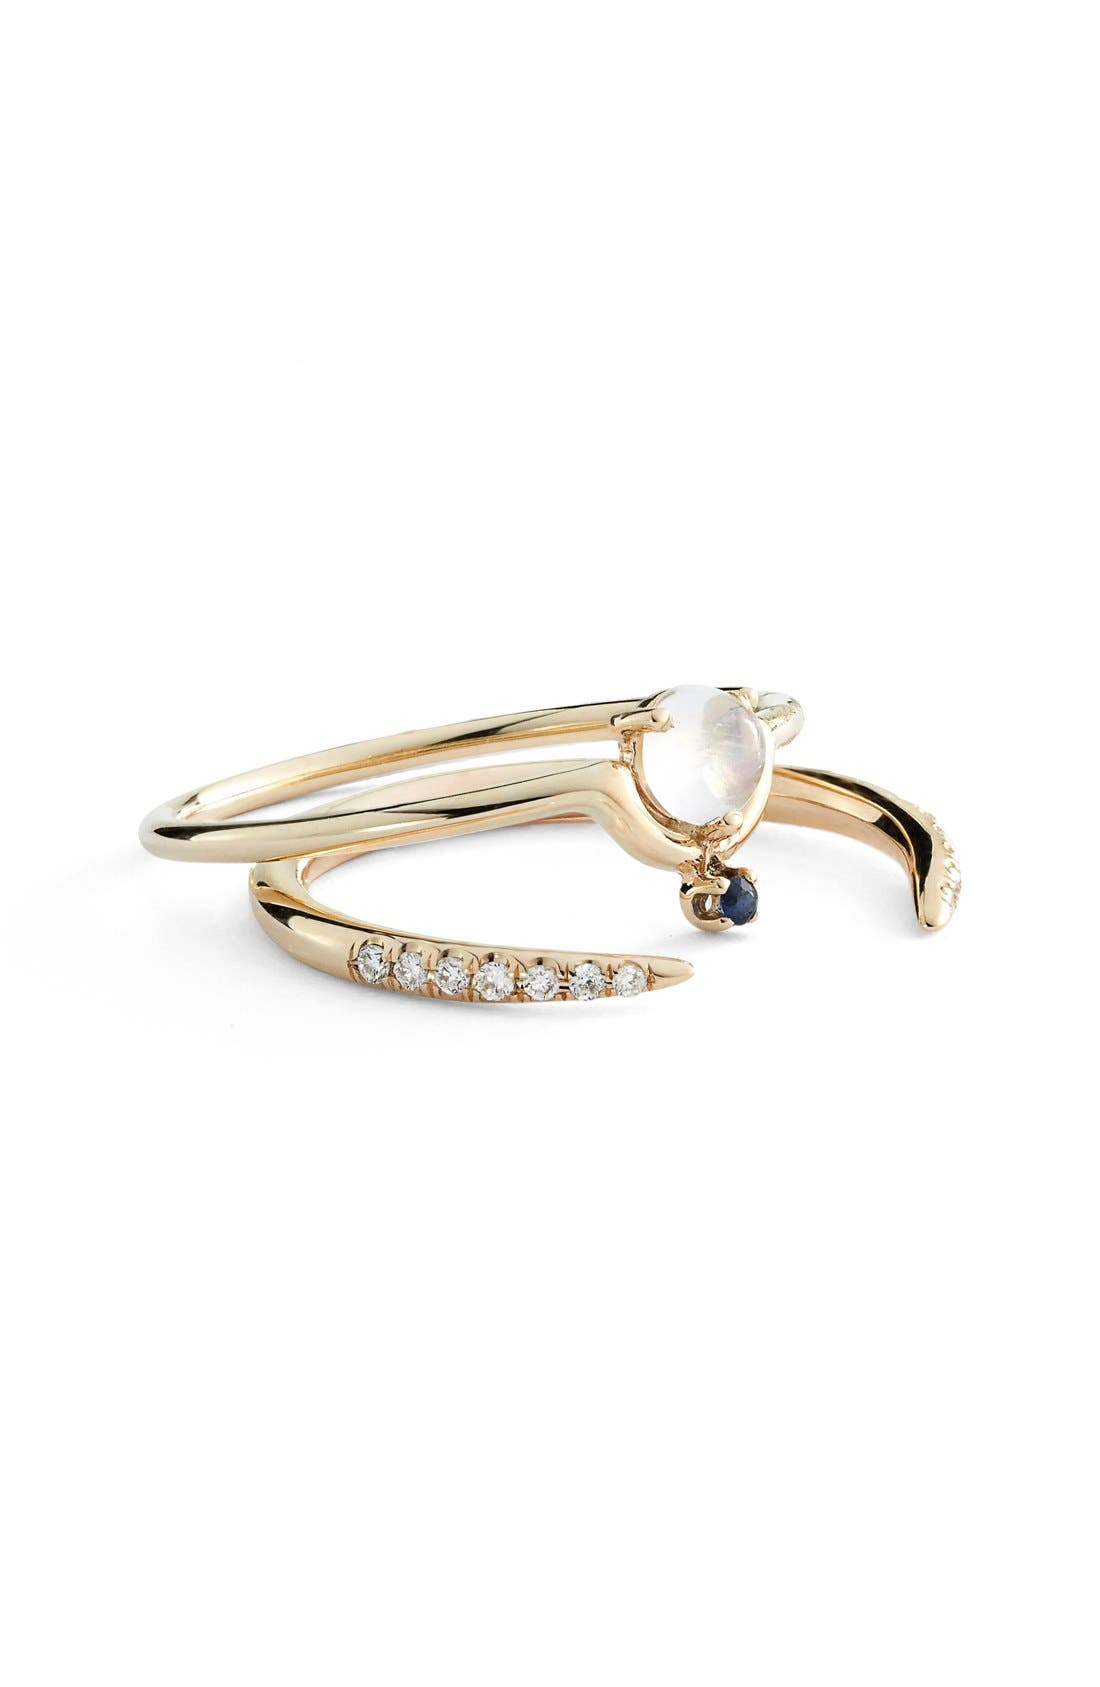 Nestled Moonstone & Sapphire Ring,                             Alternate thumbnail 4, color,                             YELLOW GOLD